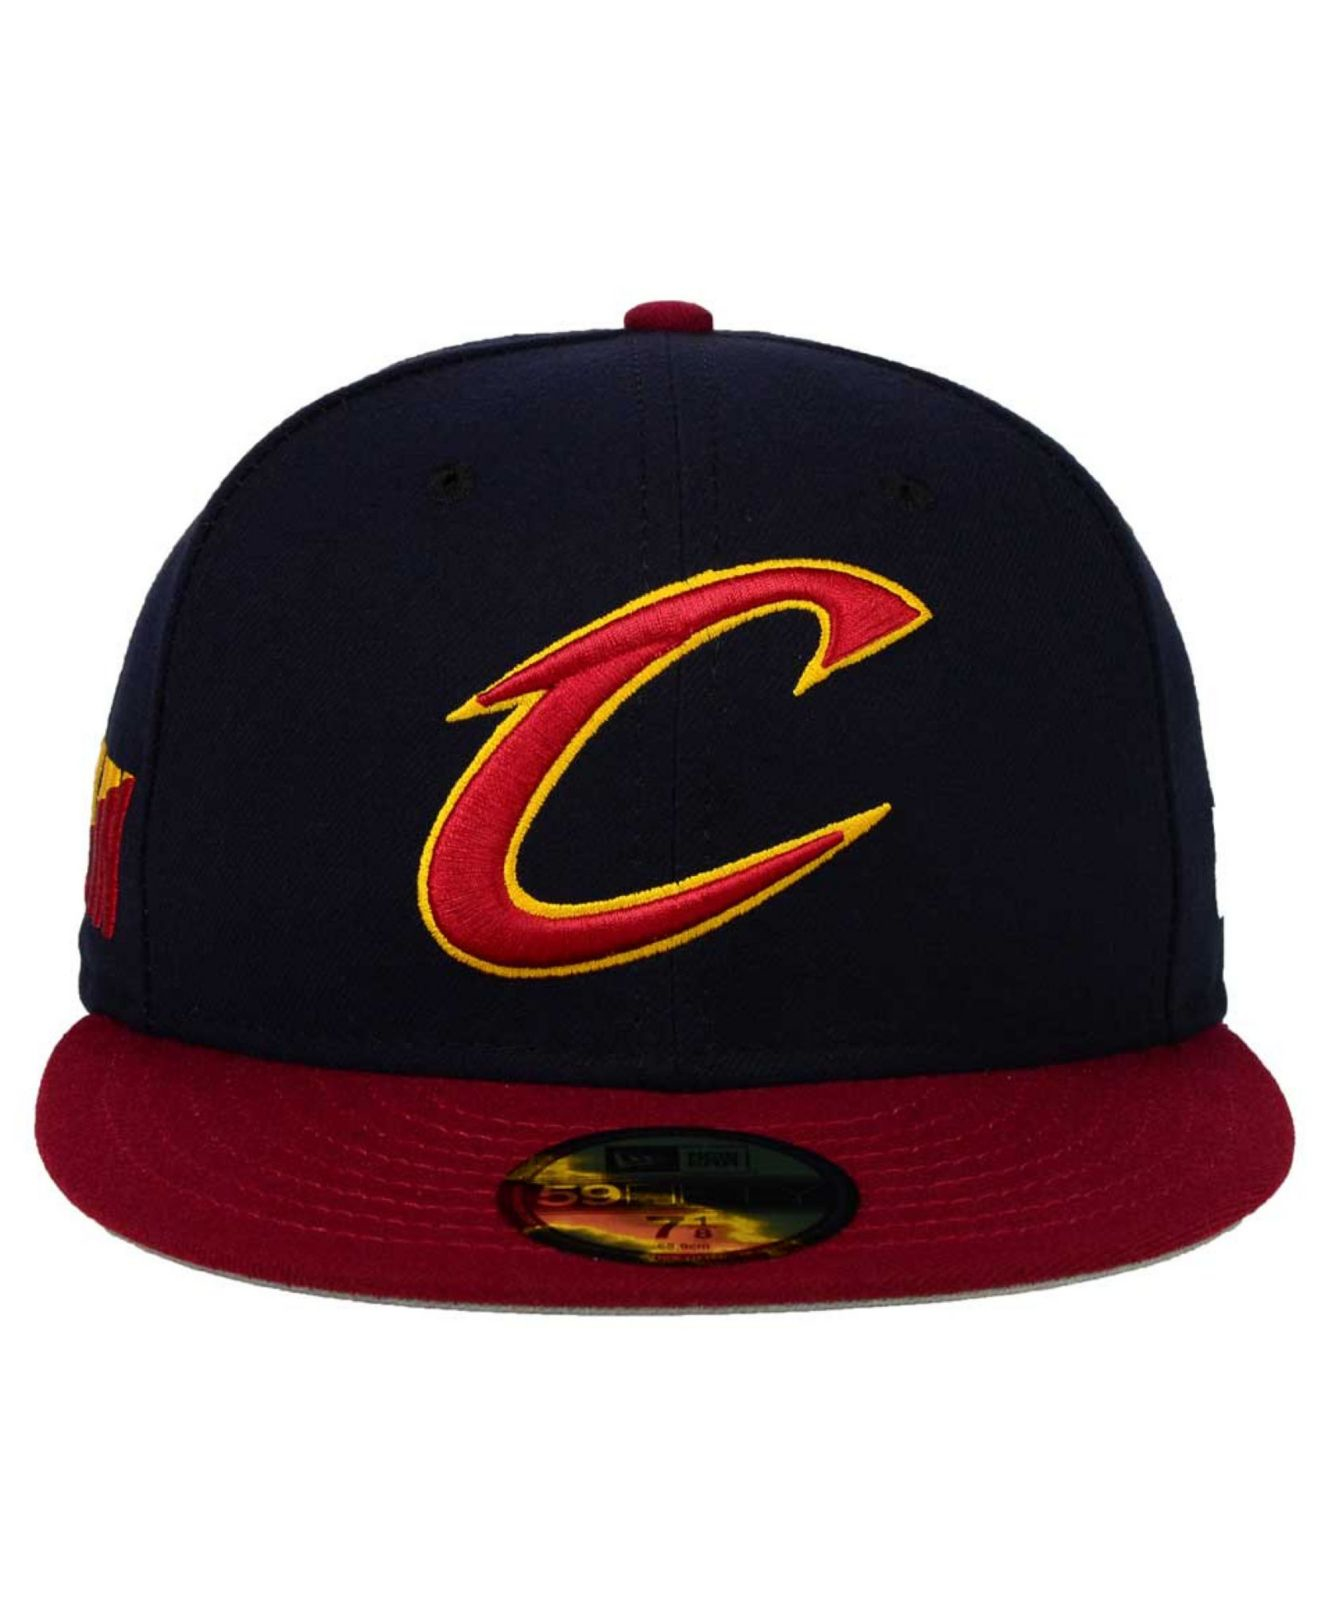 Lyst - KTZ Cleveland Cavaliers Side Hit 59fifty Cap in Blue for Men a2a473c30cae